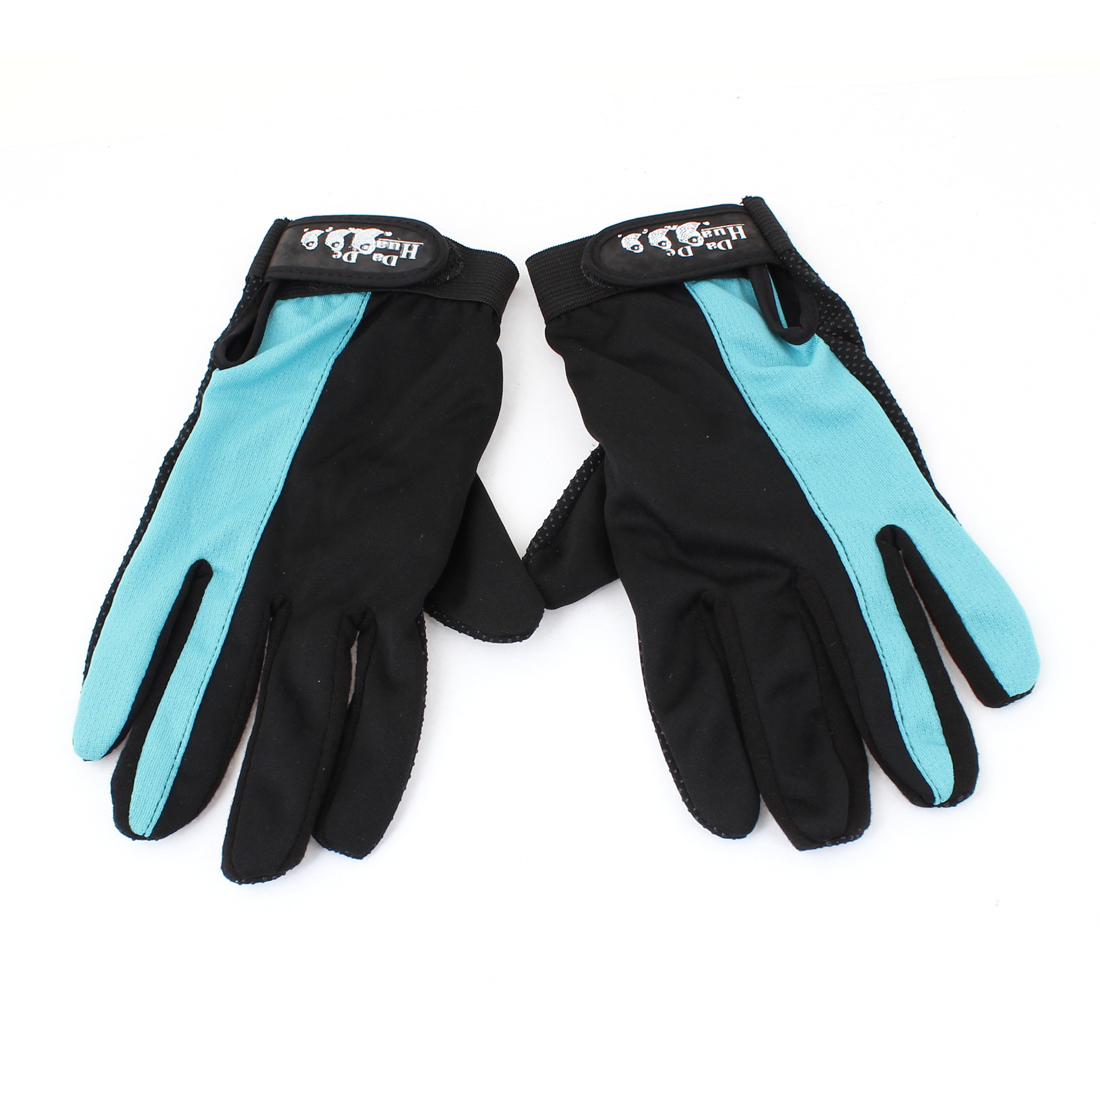 Motorcycle Black Blue Detachable Closure Nonslip Full Finger Gloves 2 Pcs